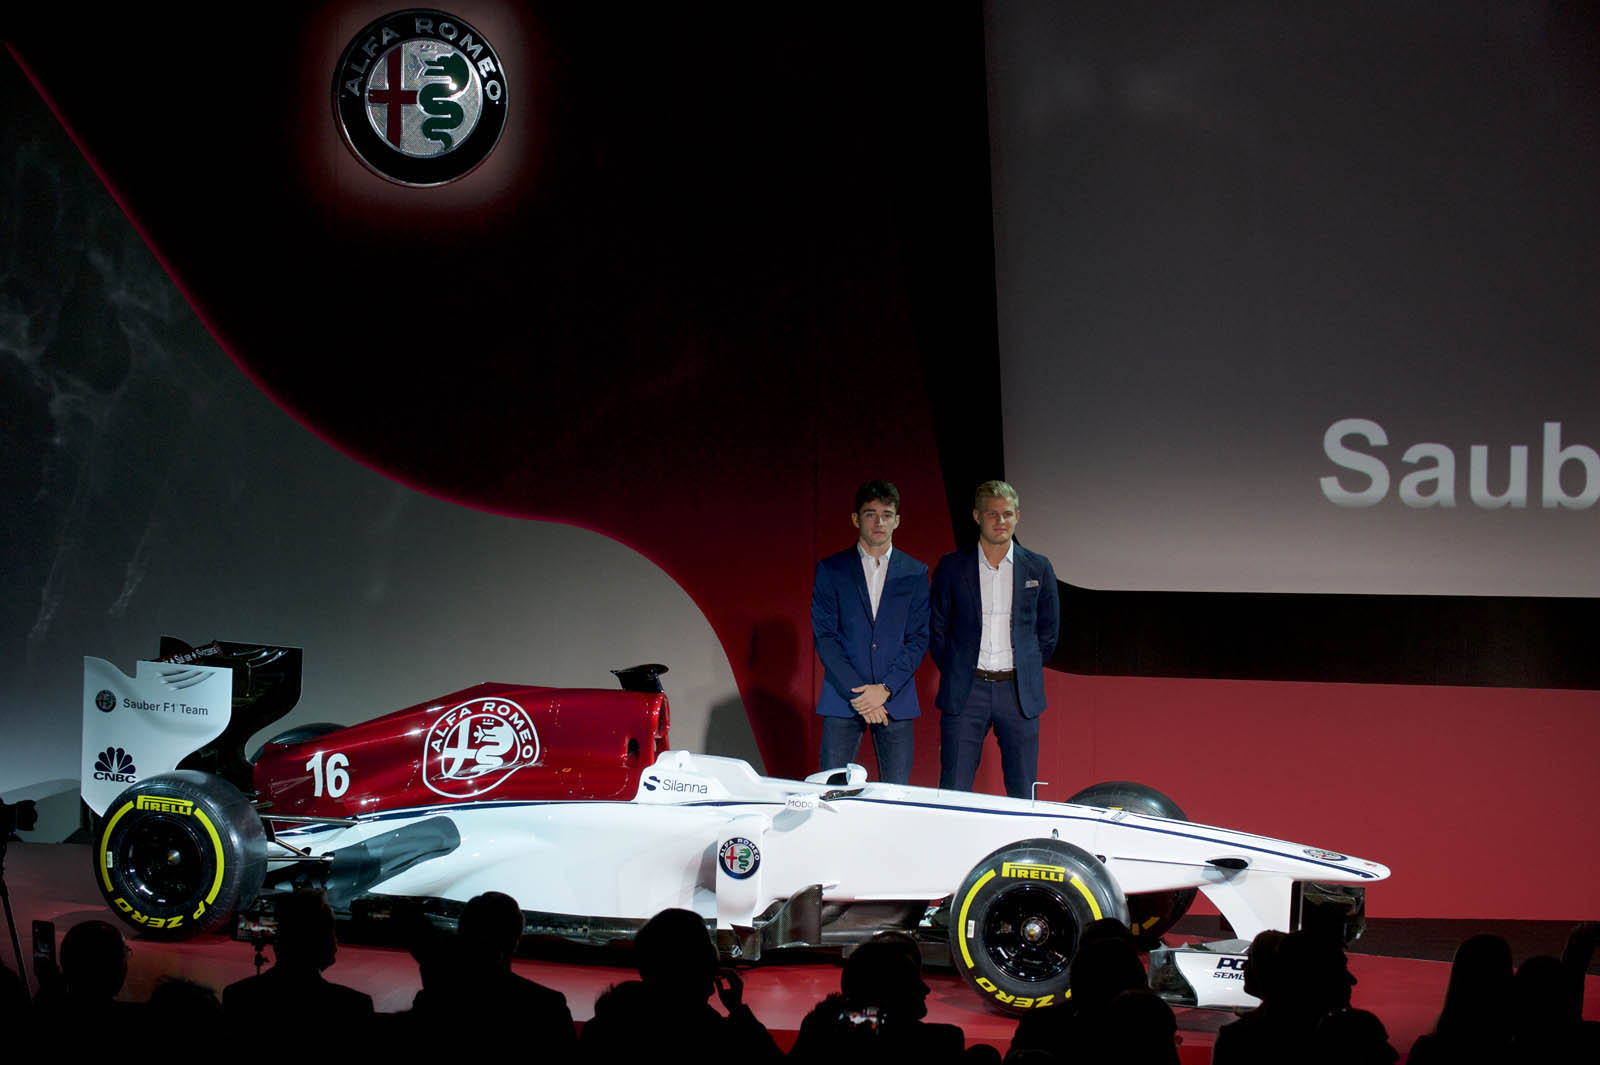 alfa romeo sauber f1 officially launches with new livery. Black Bedroom Furniture Sets. Home Design Ideas